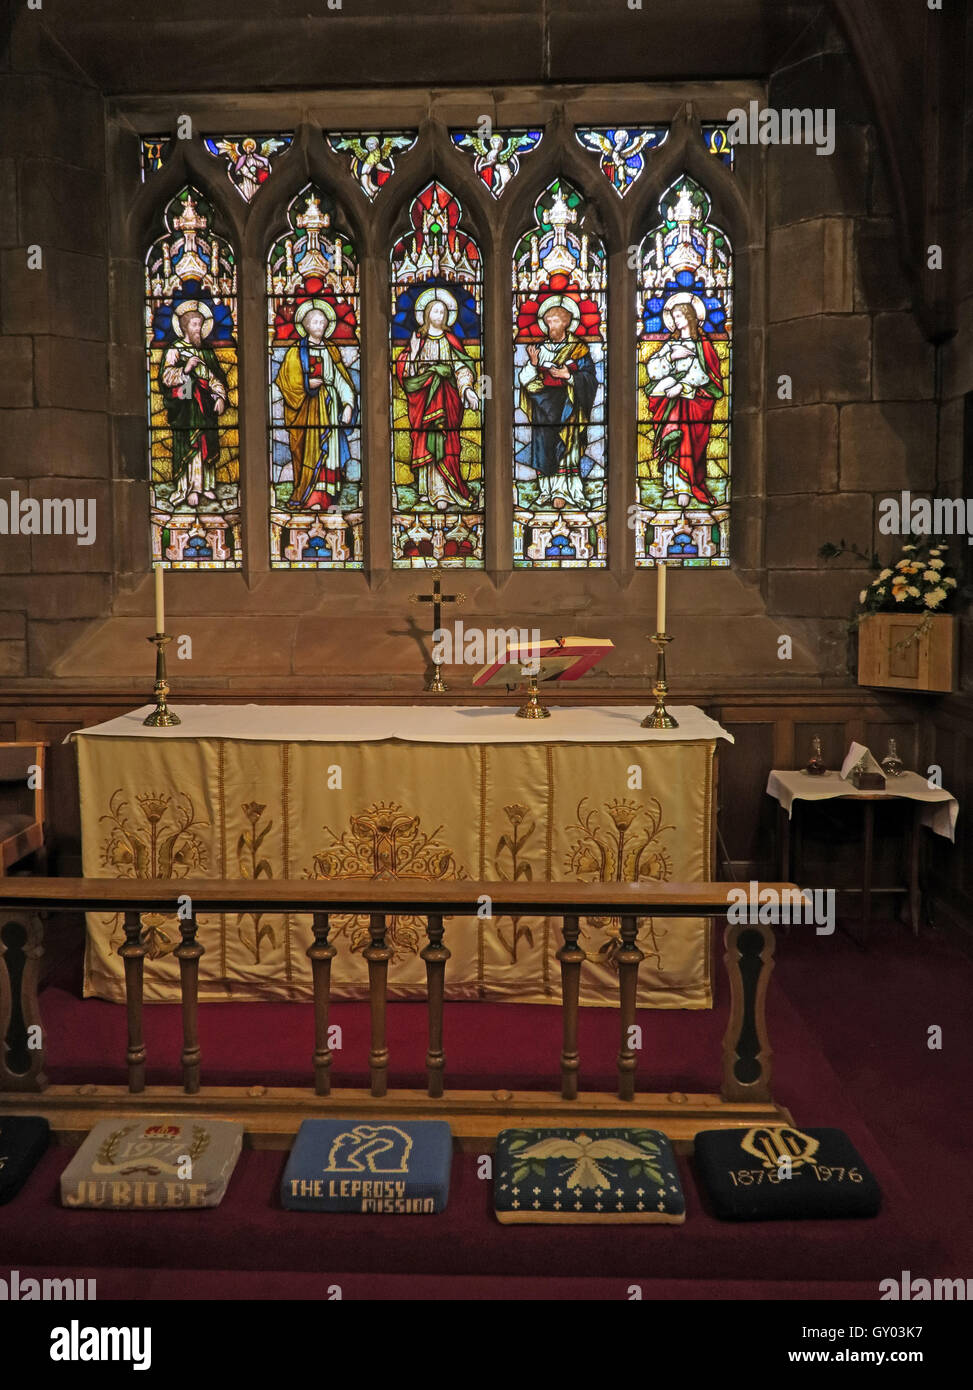 St Wilfrids Church Grappenhall- Lady Chapel Altar,Warrington - Stock Image